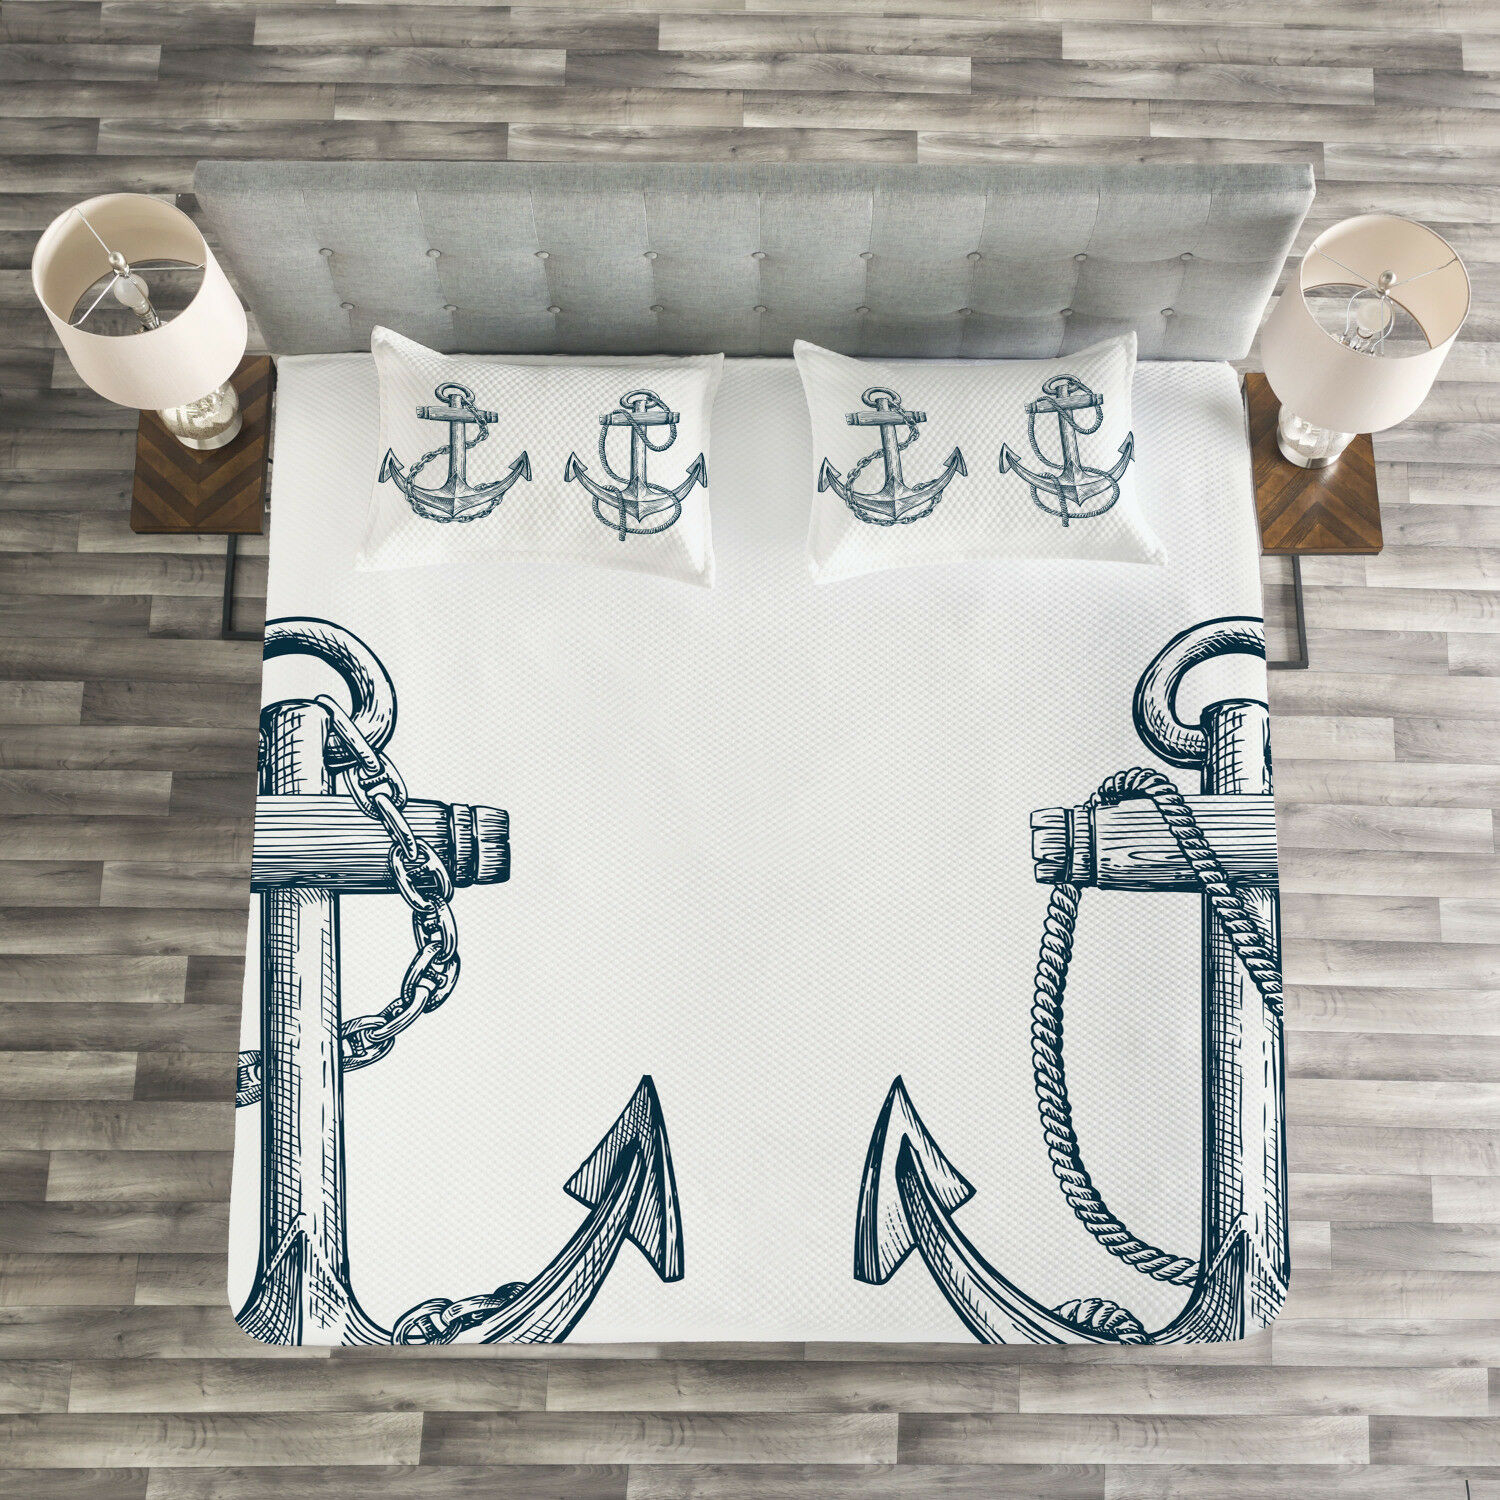 Anchor Quilted Bedspread & Pillow Shams Set, Vintage Sketch of Anchor Print